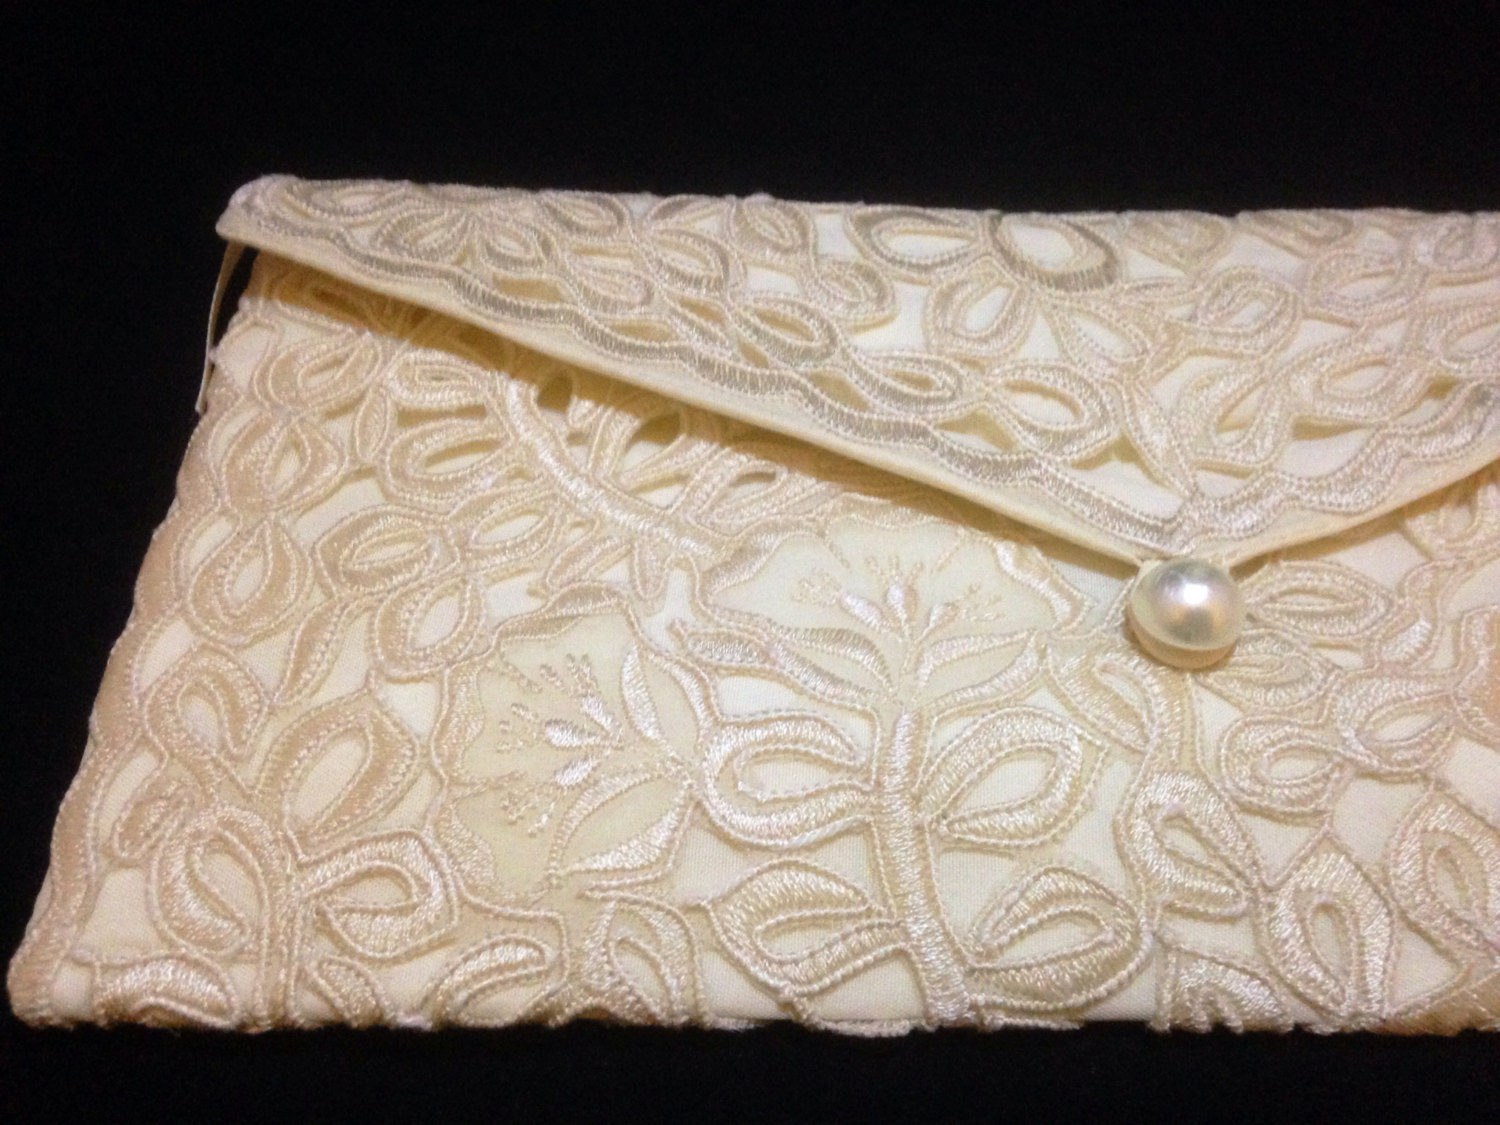 Champagne Lace Clutch Purse (with zipper)- Envelope Clutch Purse- Philippines Cutwork Embroidery Clutch- Bridal Clutch Purse- Wedding Clutch (28845032 ADARNA GALLERY) photo